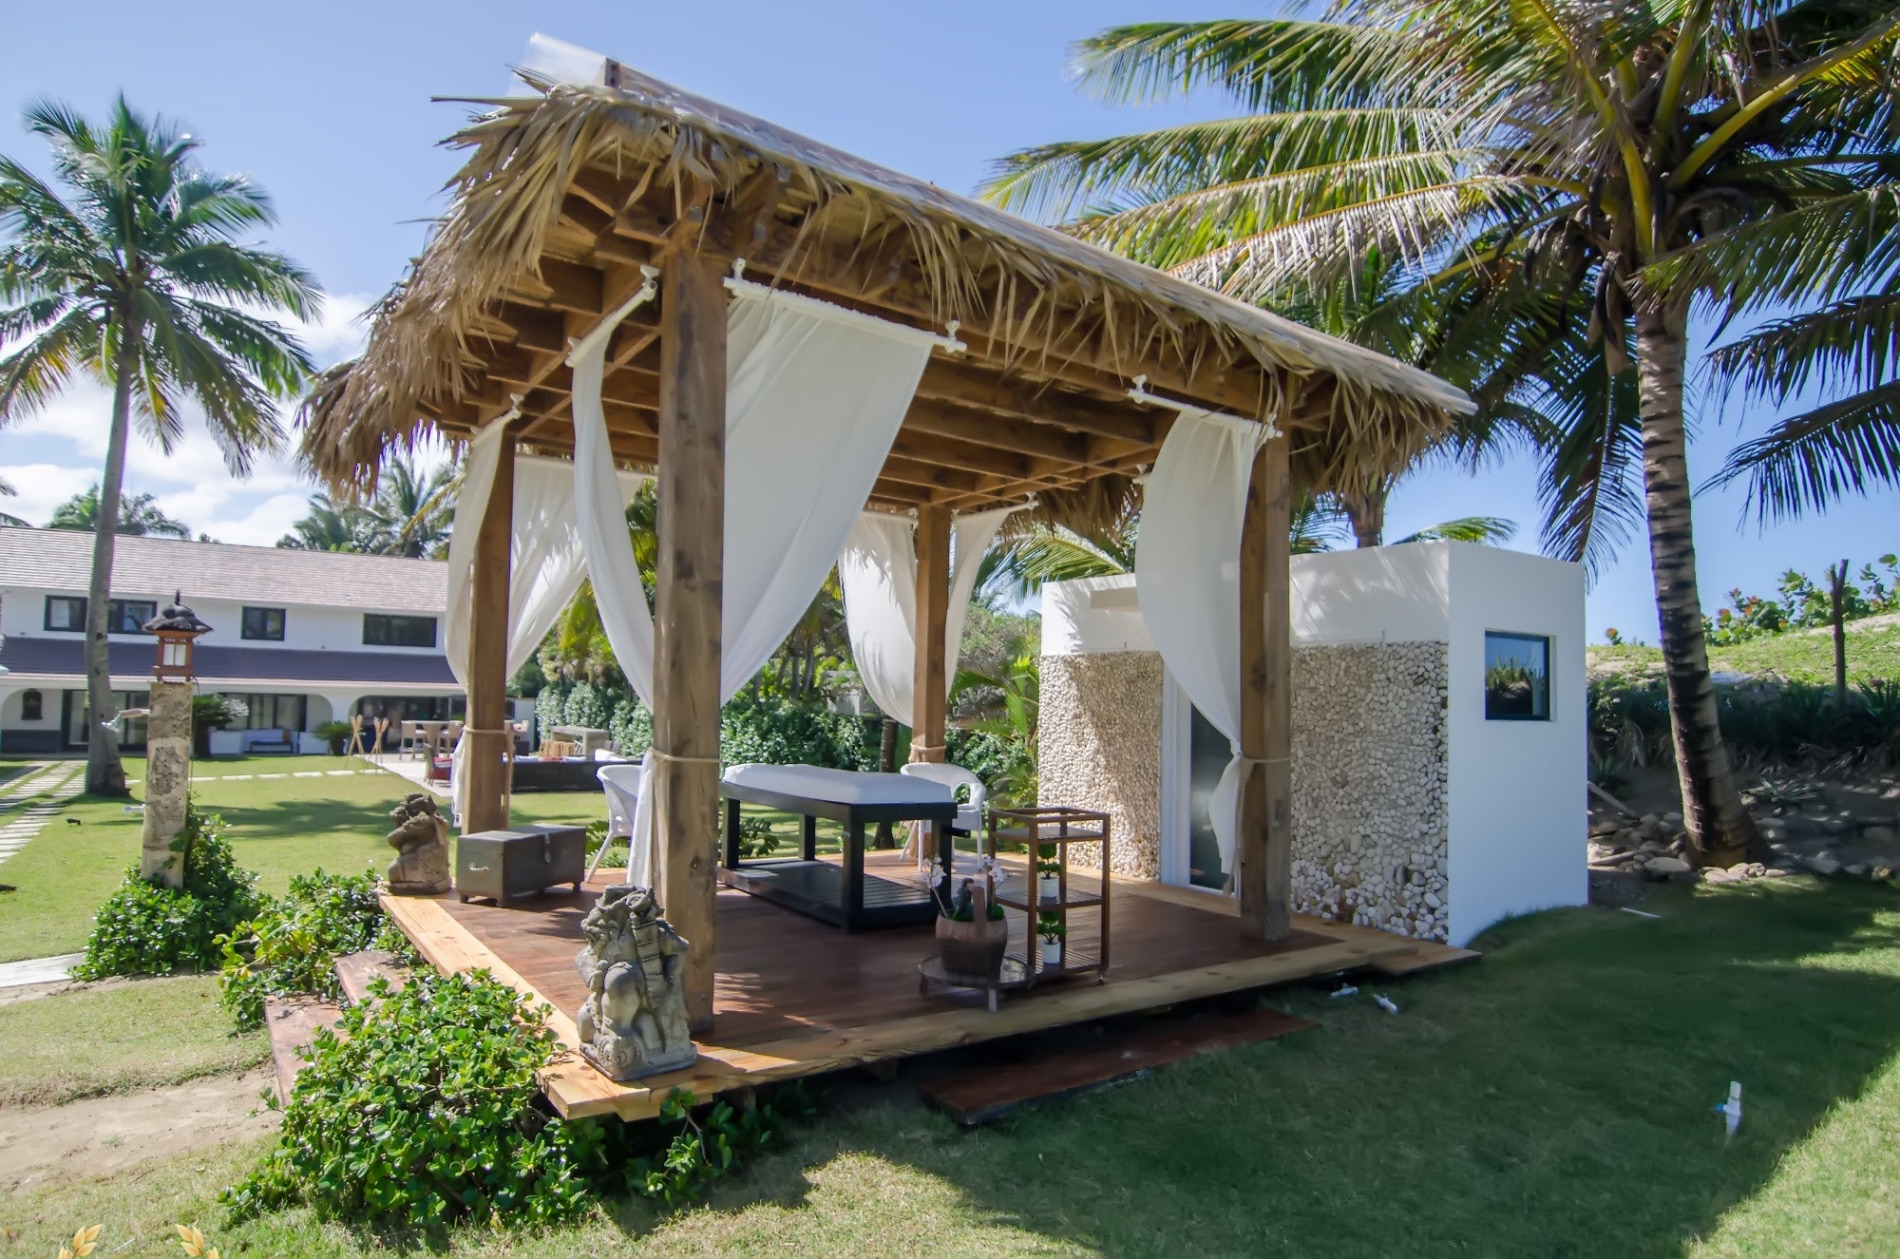 Spa gazebo at the Cabarete beach villa rental